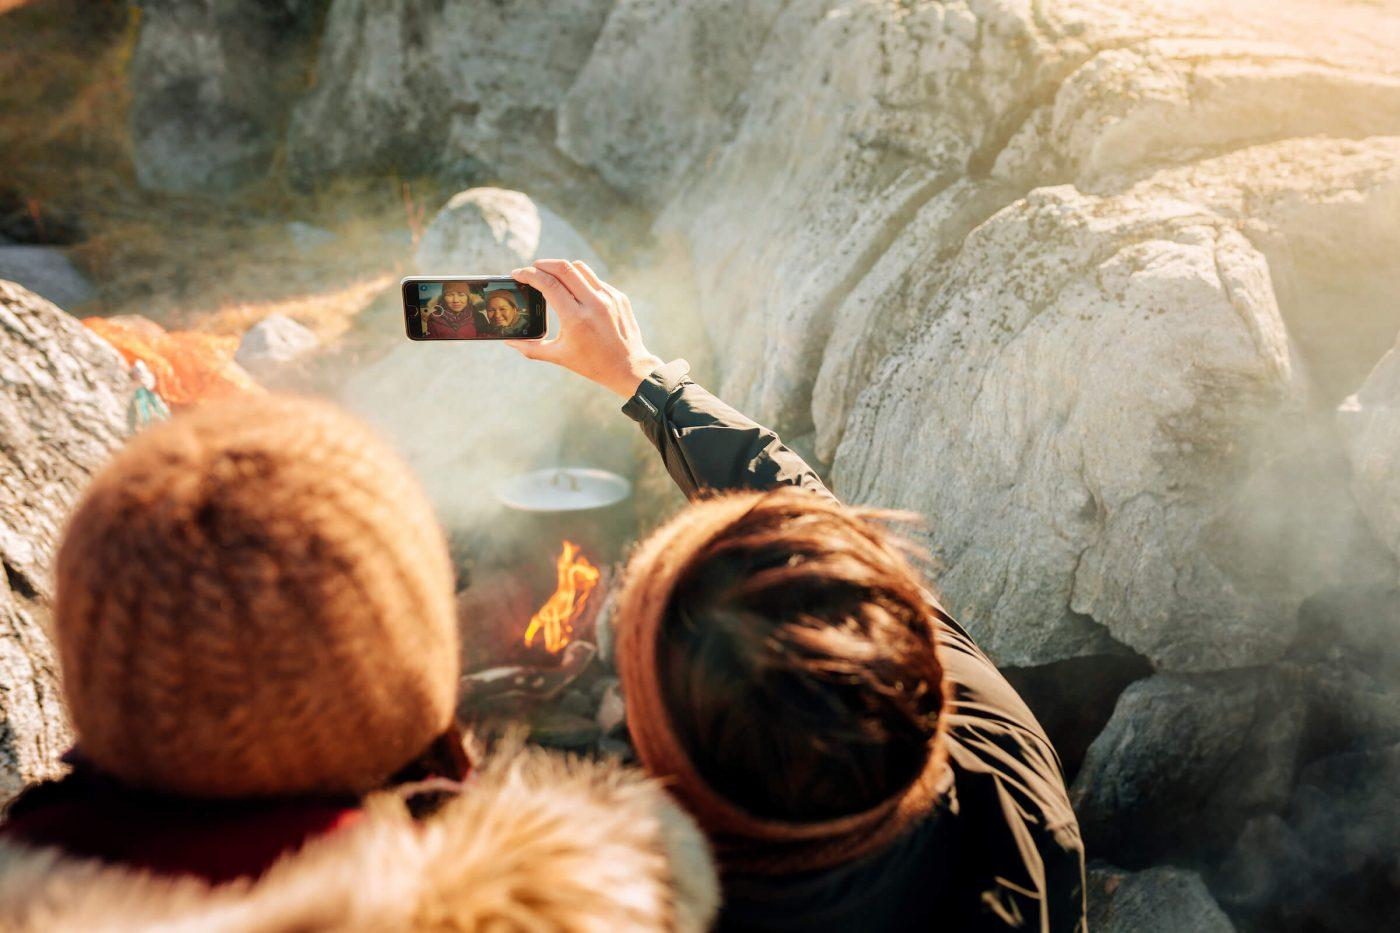 Two women taking a selfie by the fire on the beach in Nuuk in Greenland. By Rebecca Gustafsson - Visit Greenland